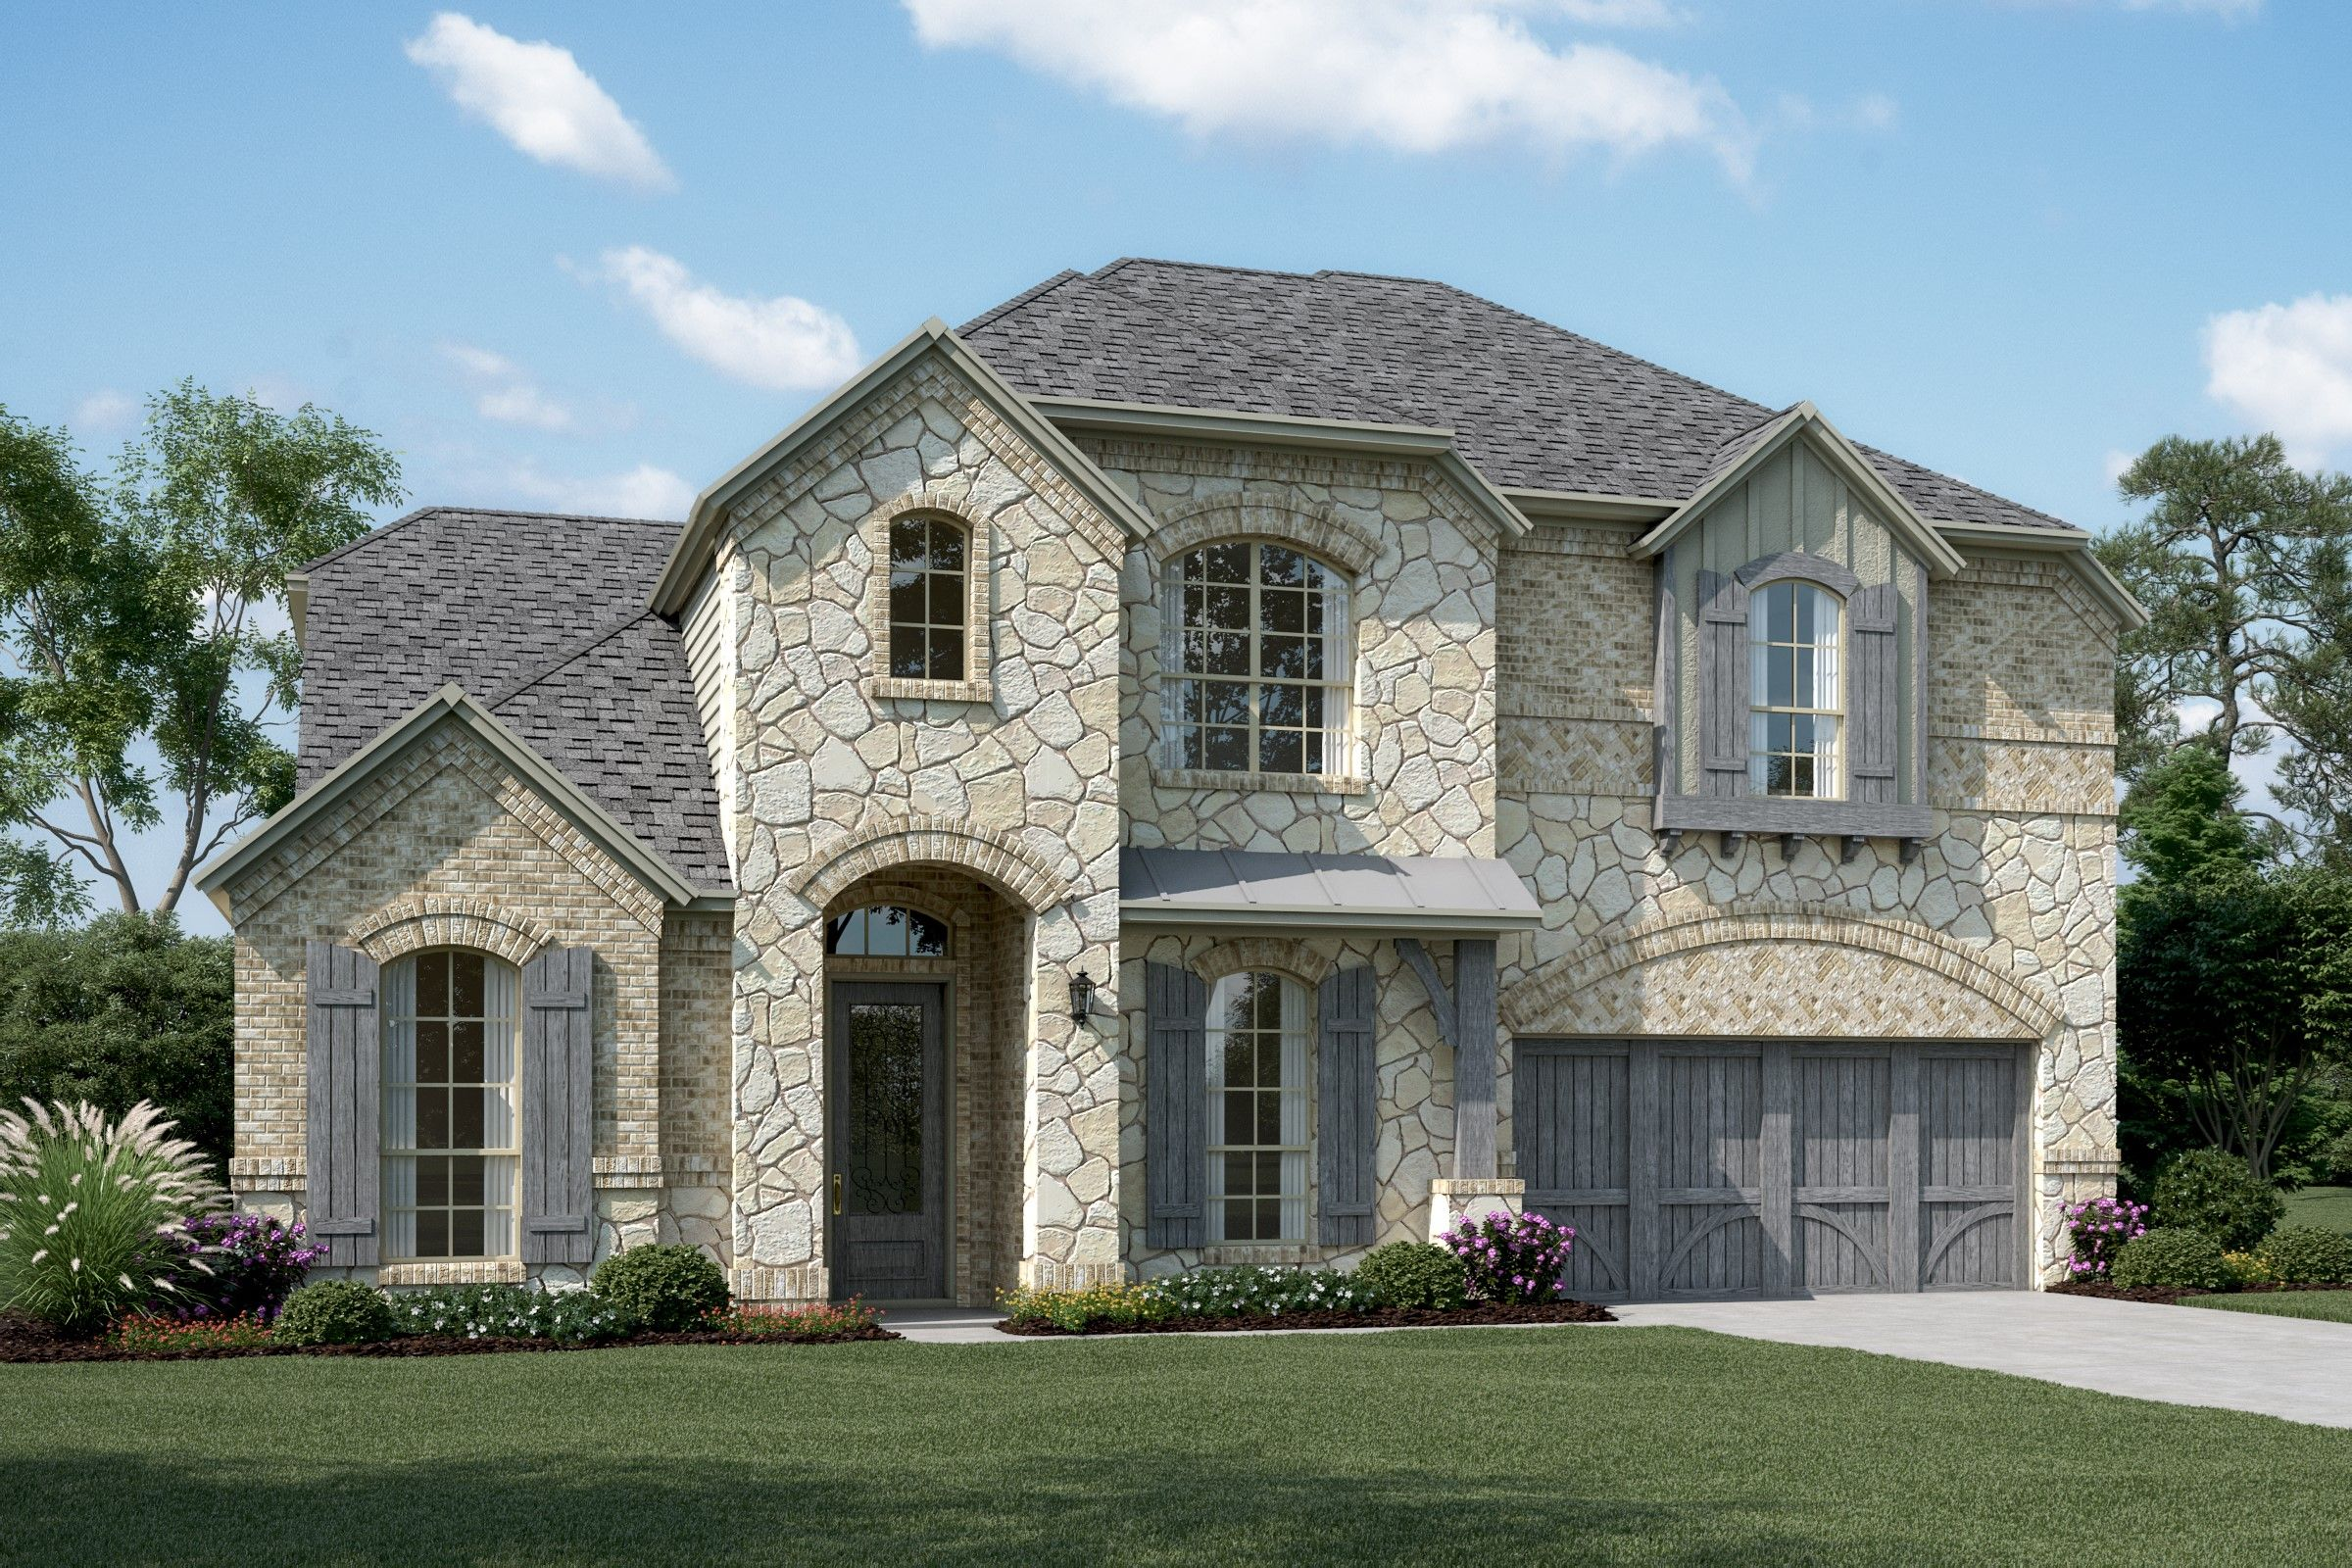 Single Family for Active at Hampshire Iii - Villas 704 Rubicon Drive Murphy, Texas 75094 United States